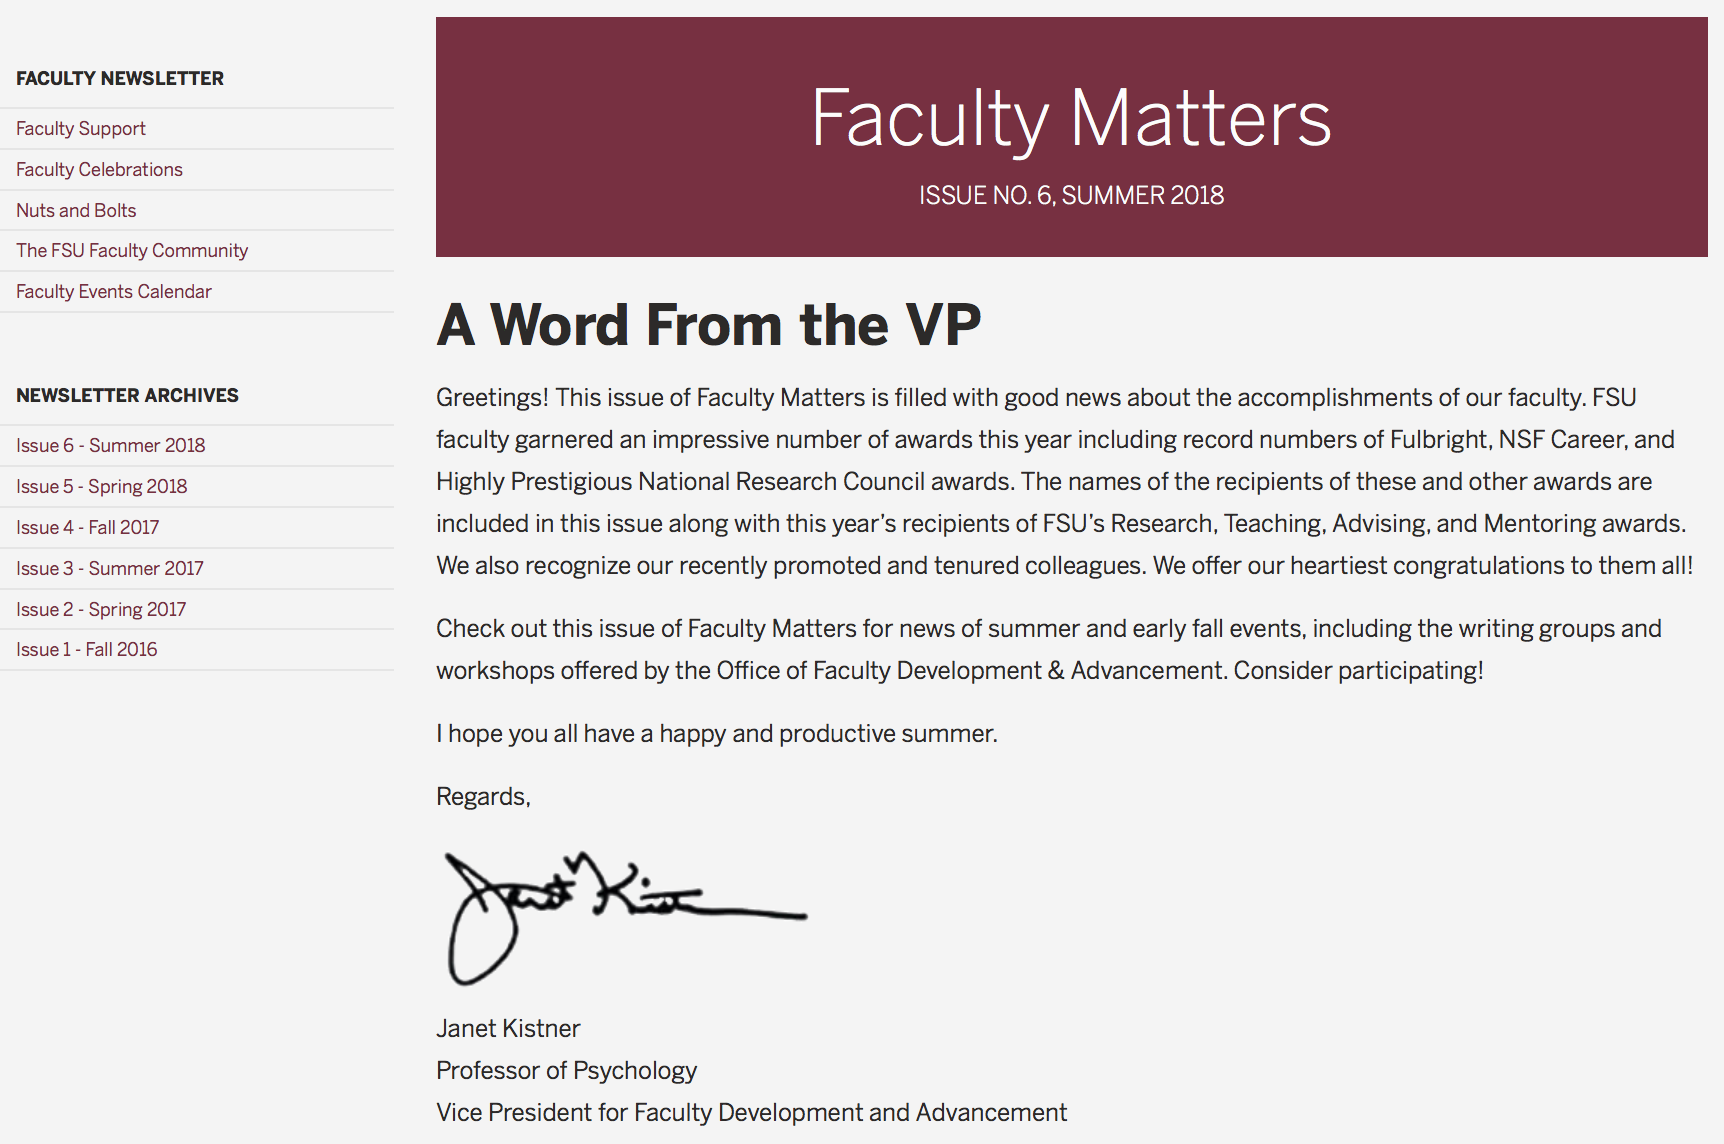 Screenshot of Faculty Matters Issue 6